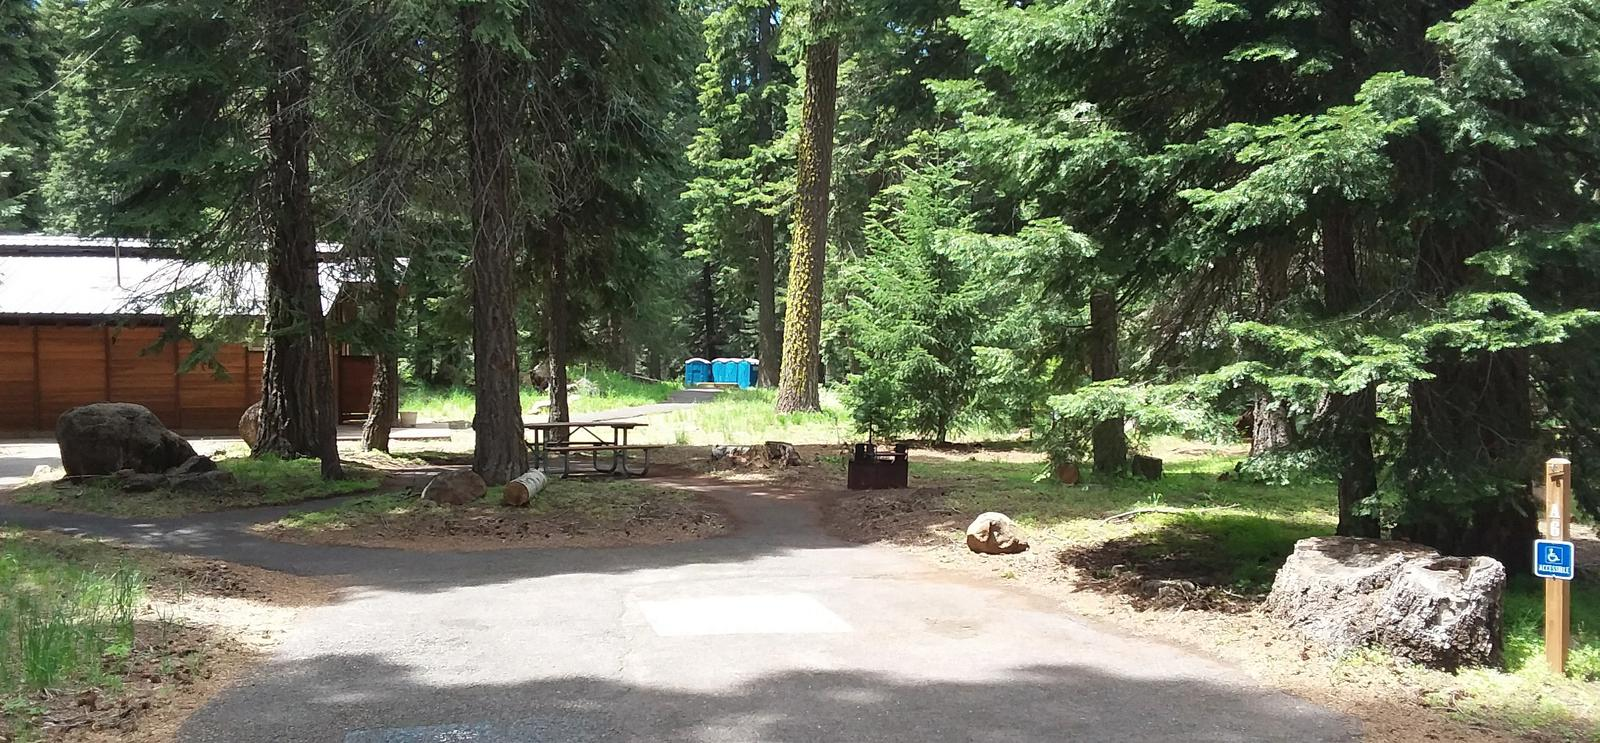 View of Site 6 Accessible Parking PadAccessible Campsite 6, Loop A Hyatt Lake